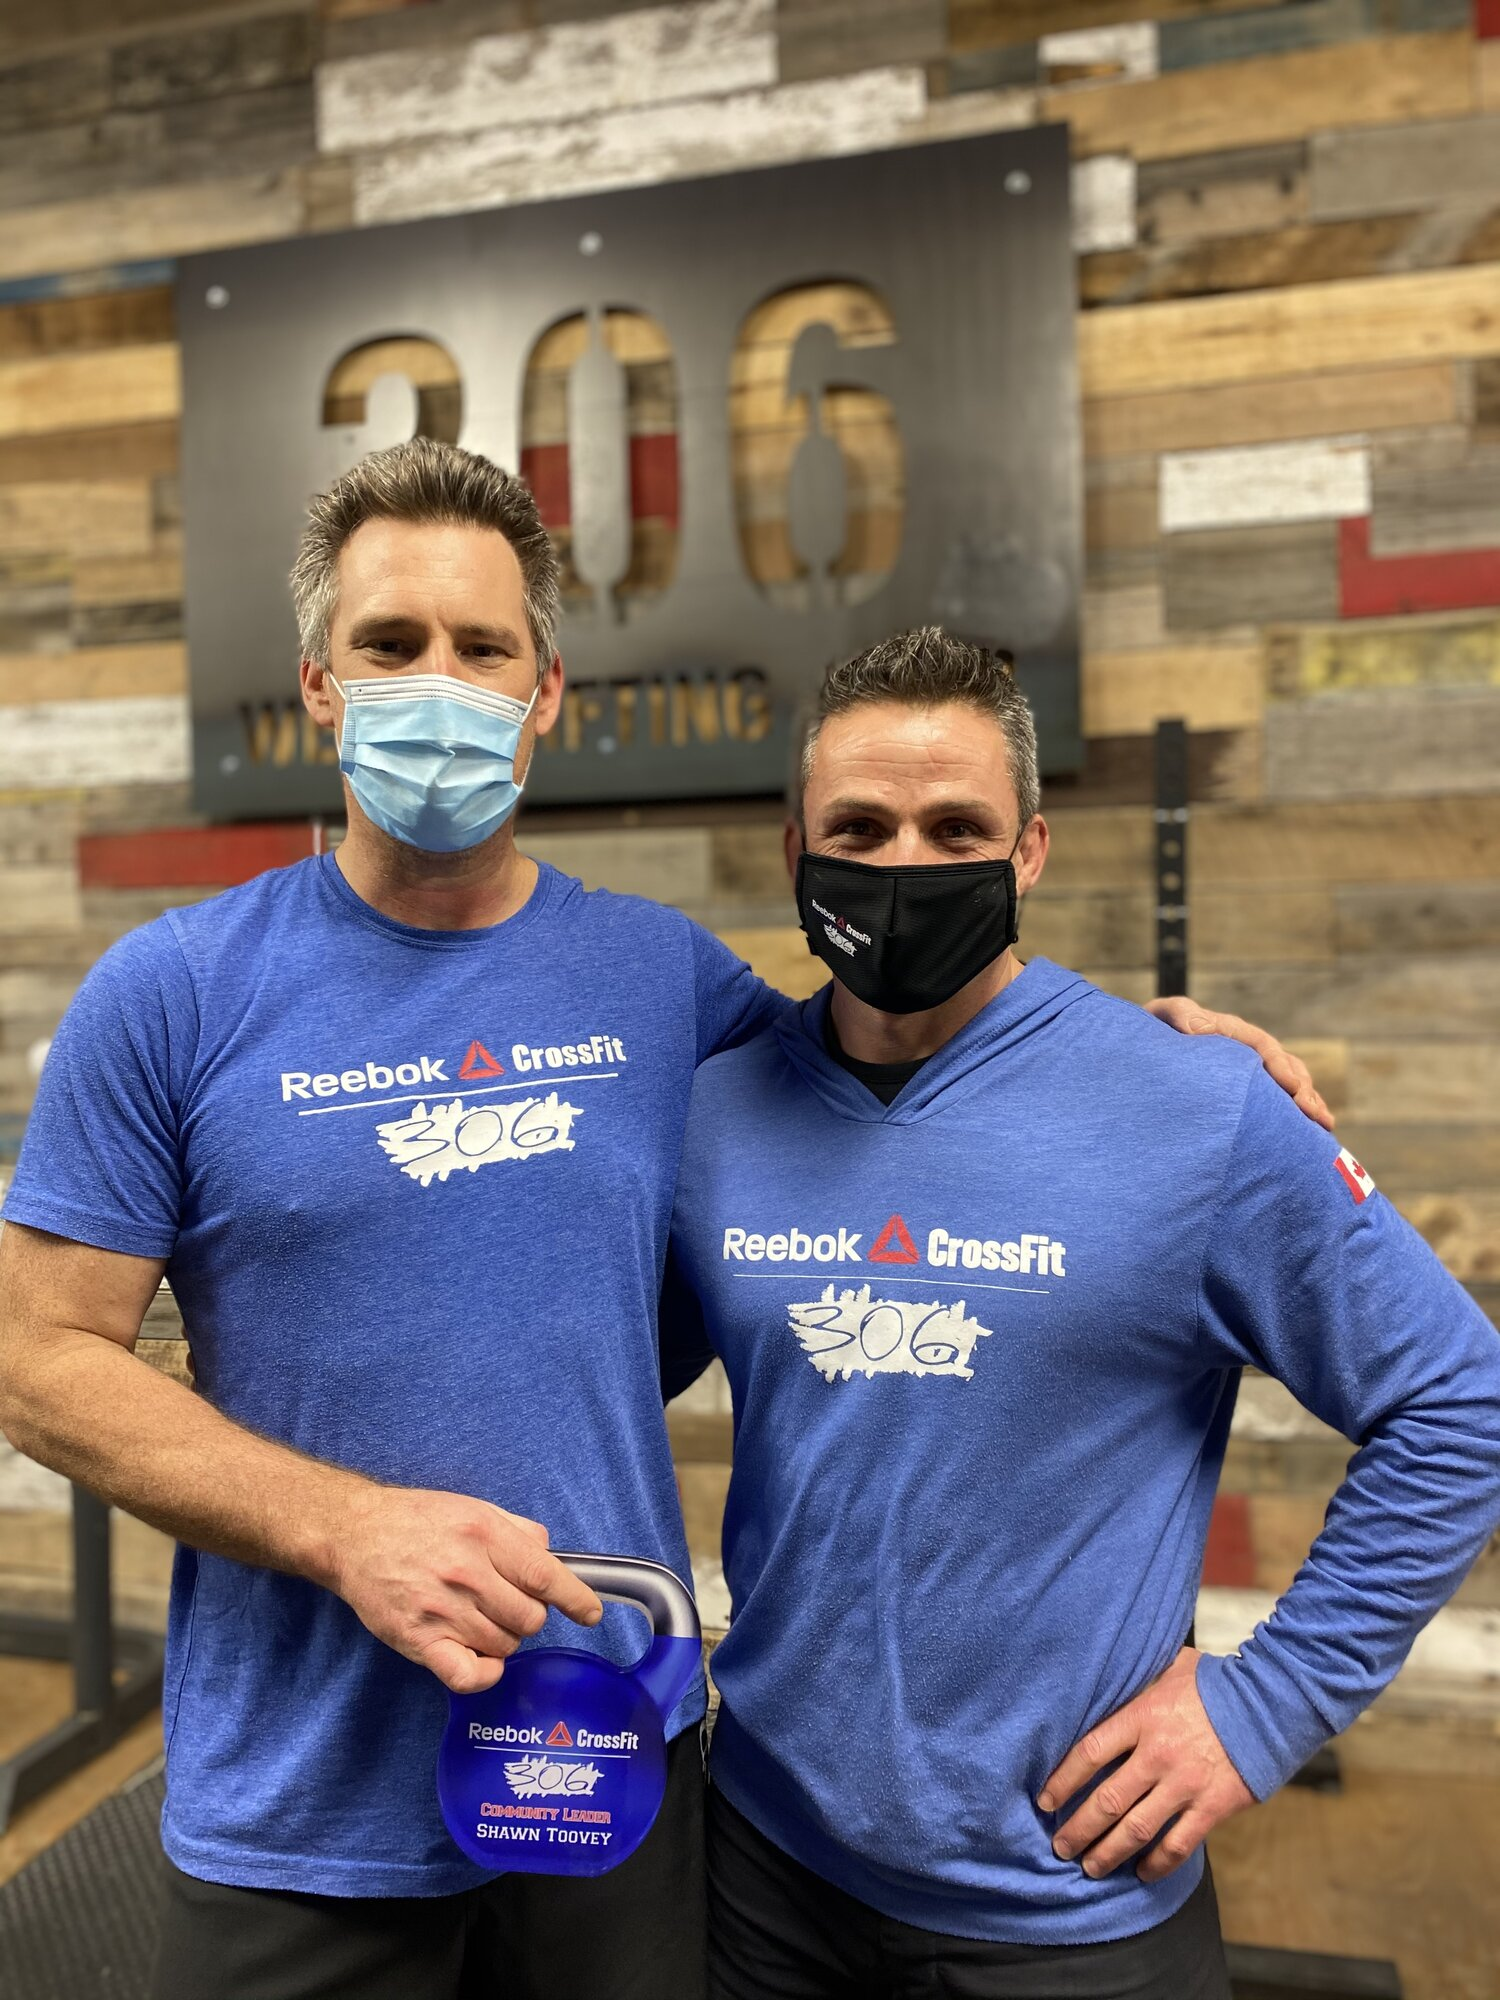 Male Community Leader Of The Year Shawn Toovey Crossfit 306 He is best known for his role as brian cooper in the popular drama dr toovey was born march 1, 1983 in lincoln, nebraska. reebok crossfit 306